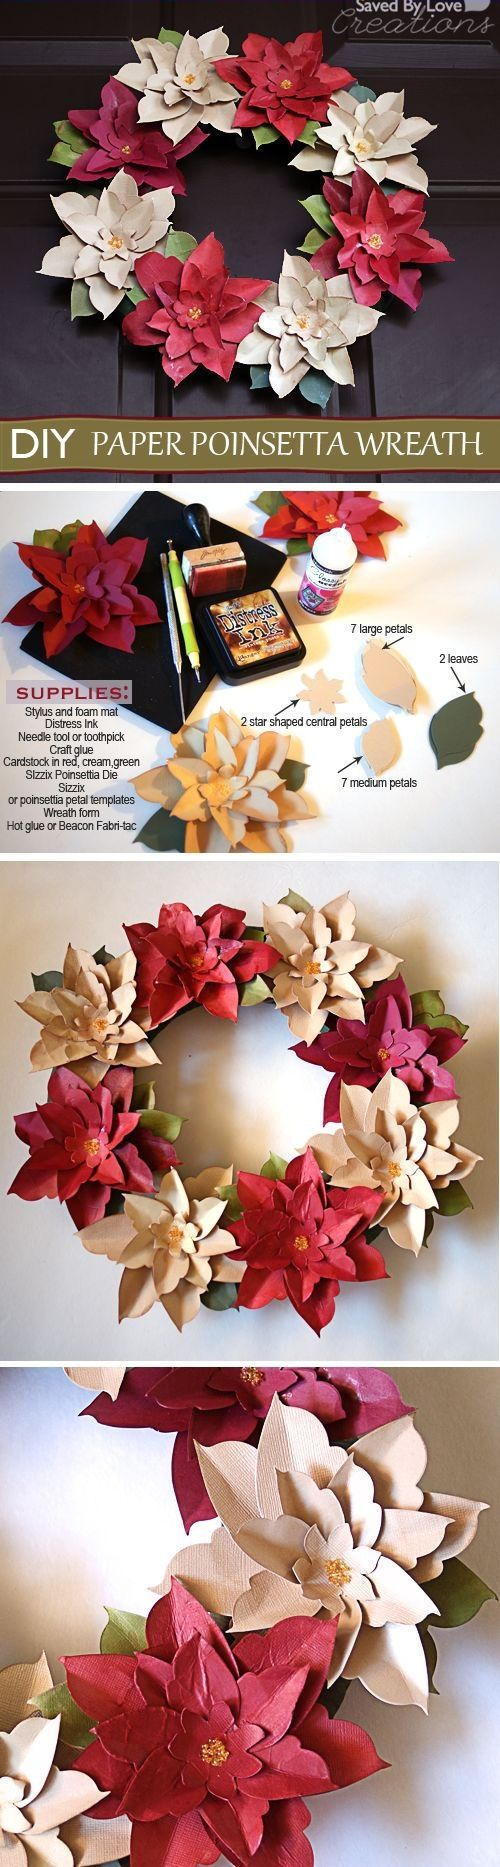 Do it yourself paper christmas decorations - Diy Poinsetta Wreath Christmas Diy Ideas Craft Flowers Paper Crafts Origami Wreaths Christmas Crafts Christmas Decorations